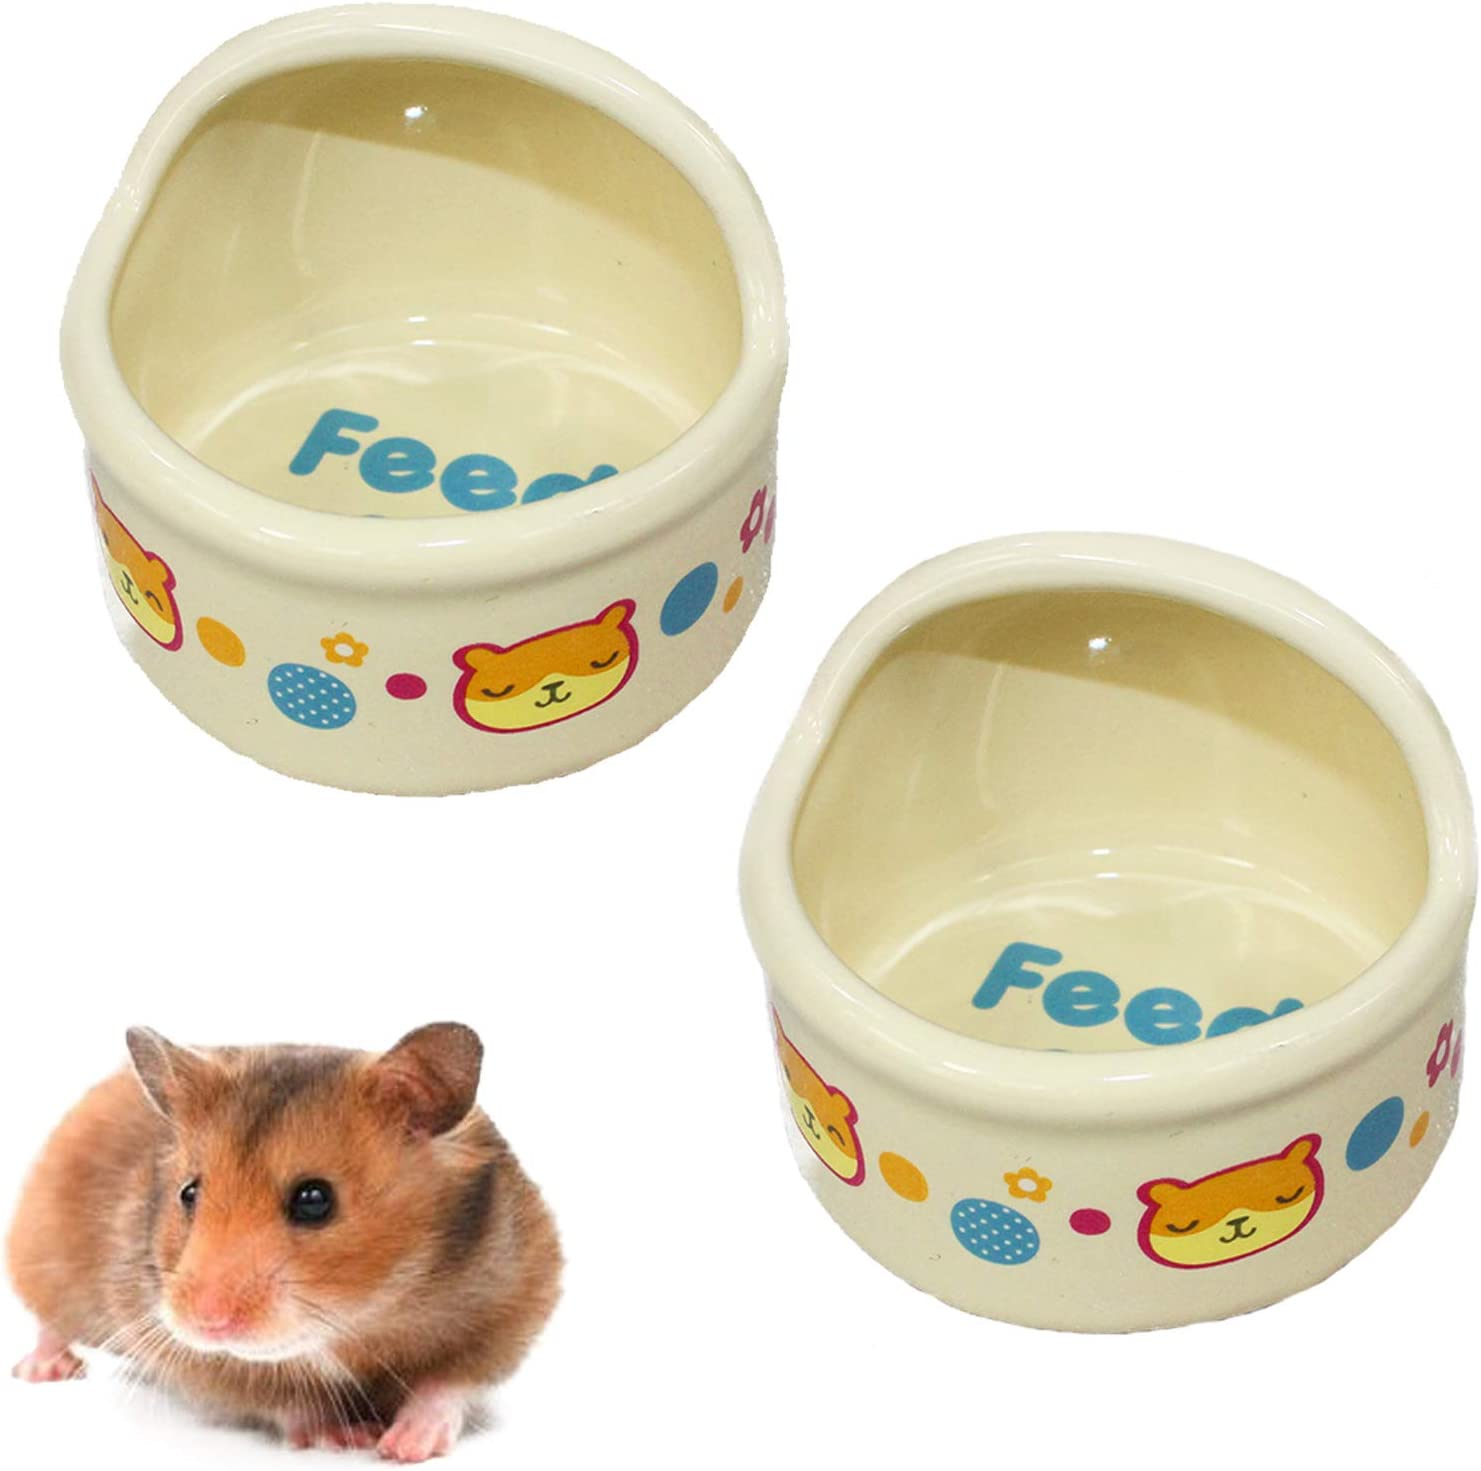 kathson Hamster Feeding Bowl,Ceramic Small Animal Dishes Food and Water Bowl for Small Rodents Gerbil Hamsters Mice Guinea Pig Hedgehog and Other Small Animals(2 pcs)